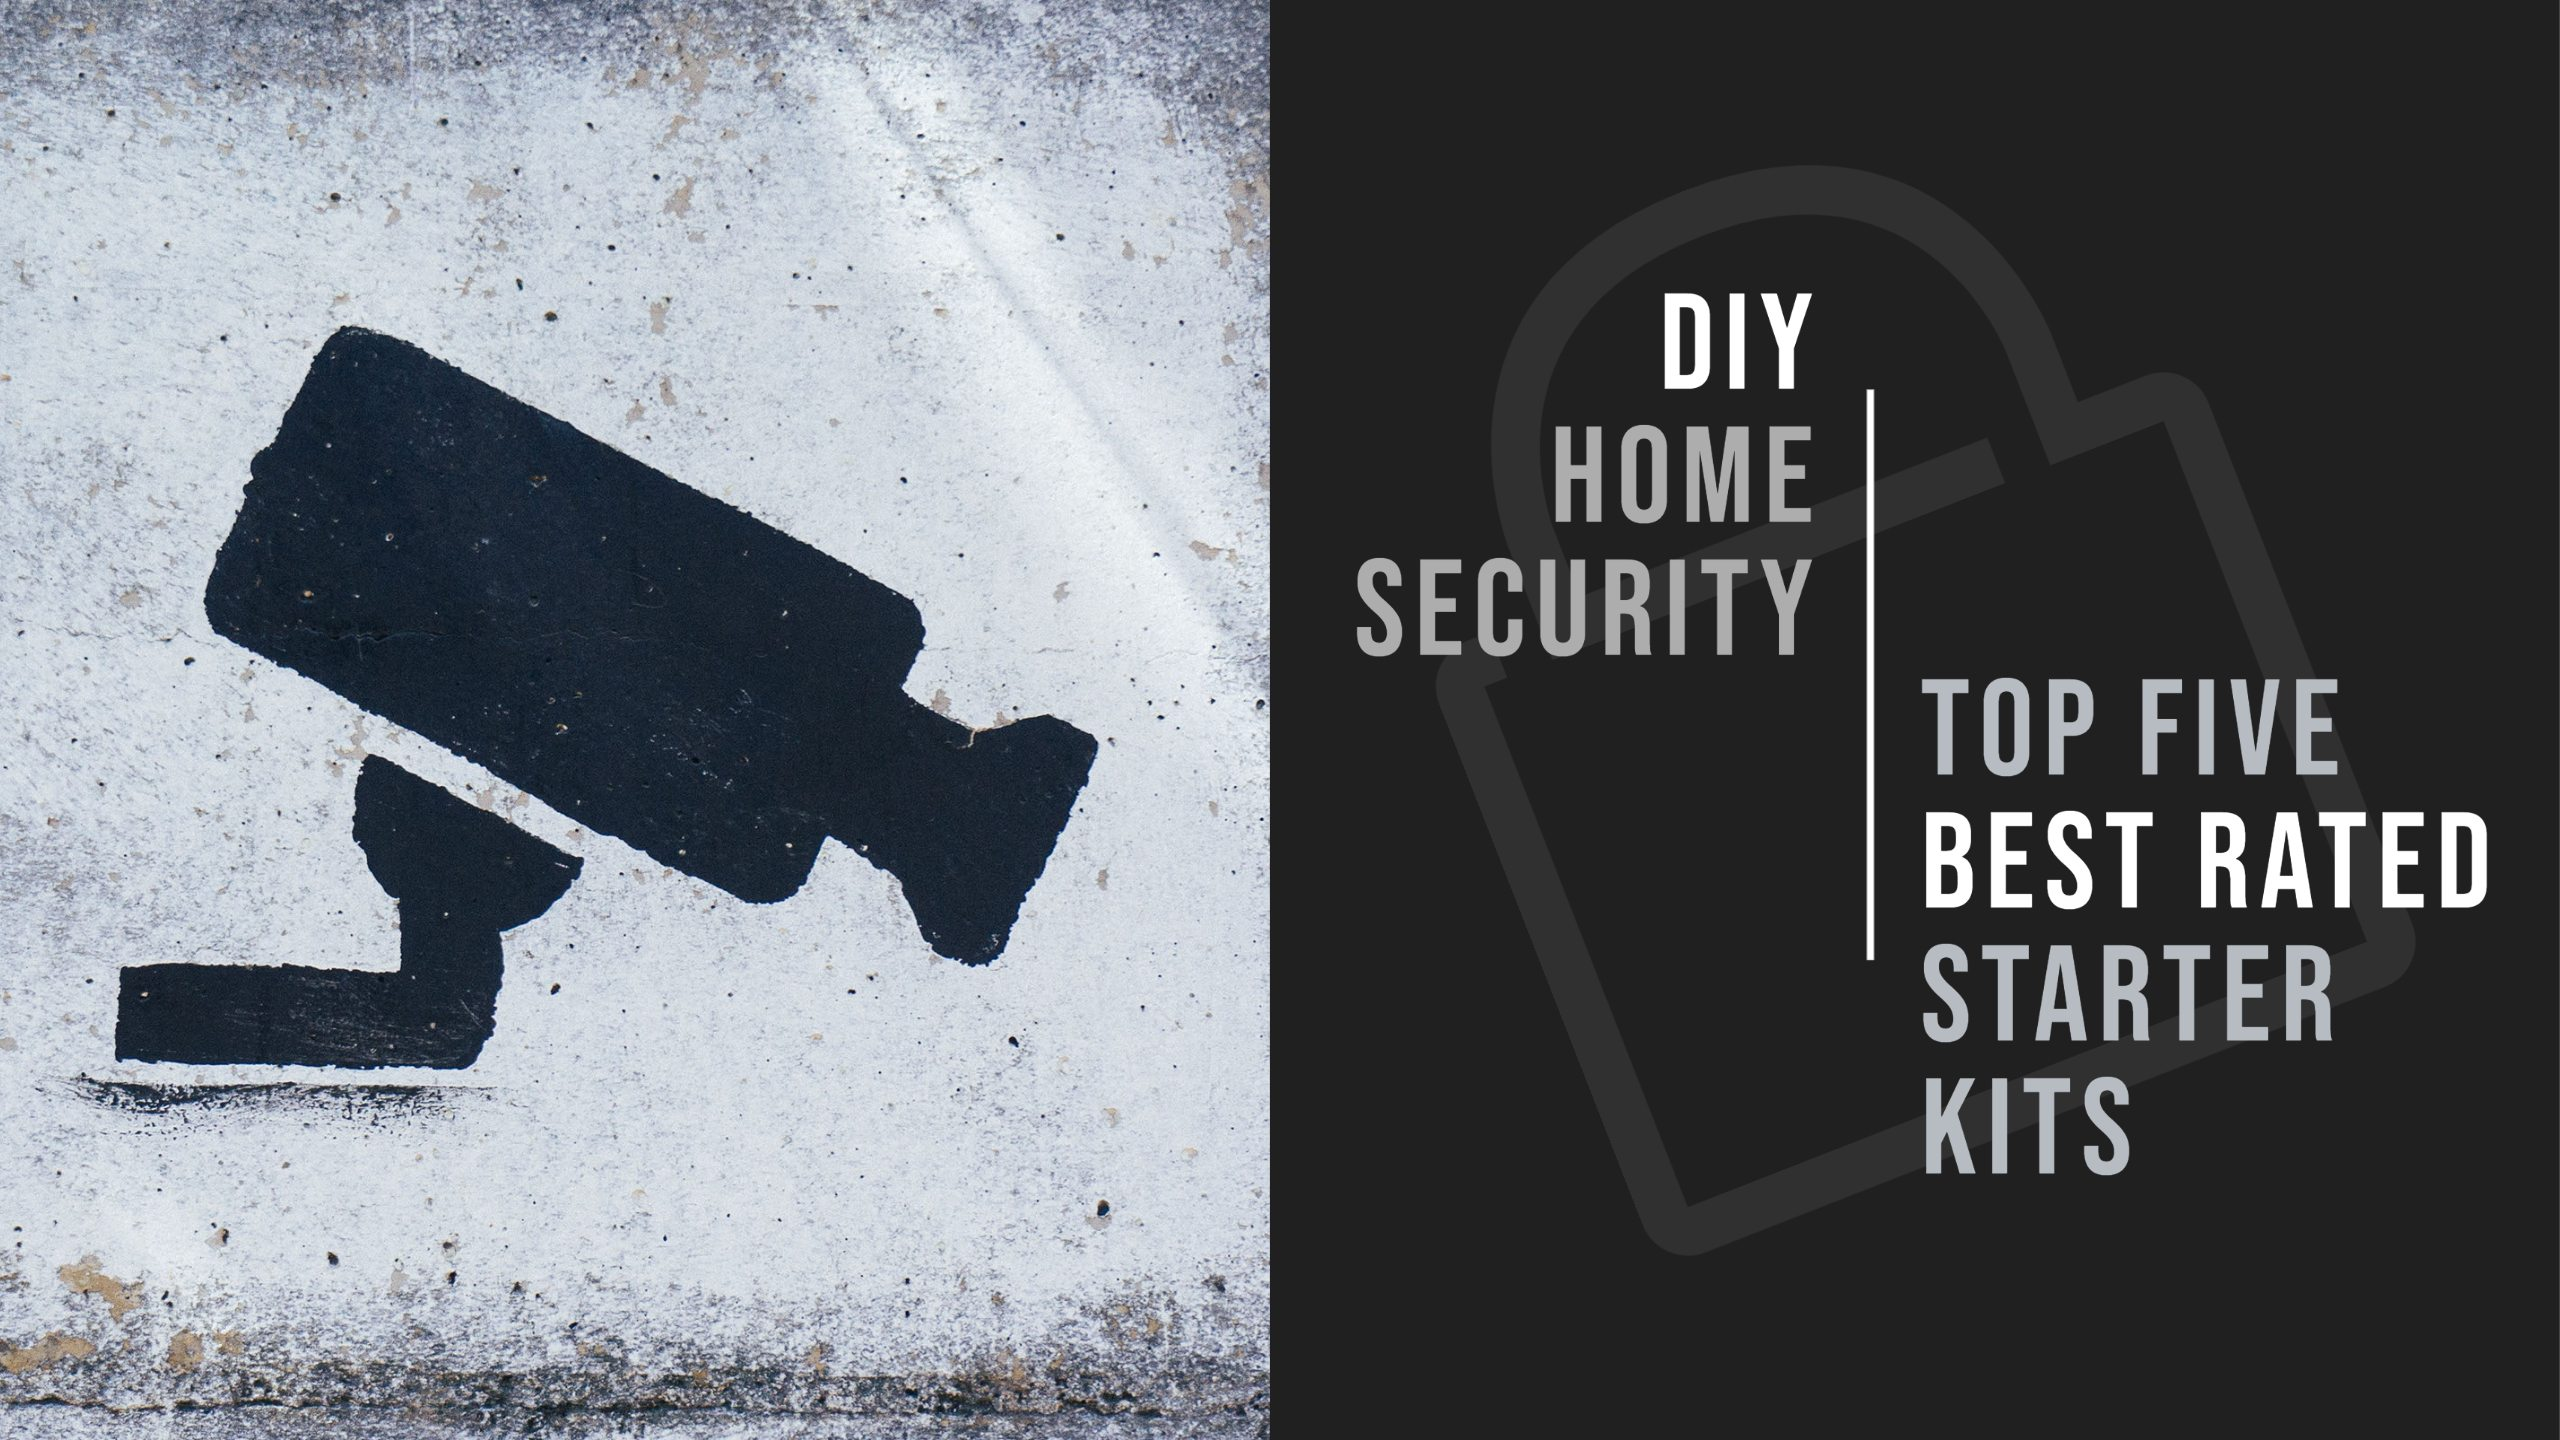 DIY Home Security Starter Kits